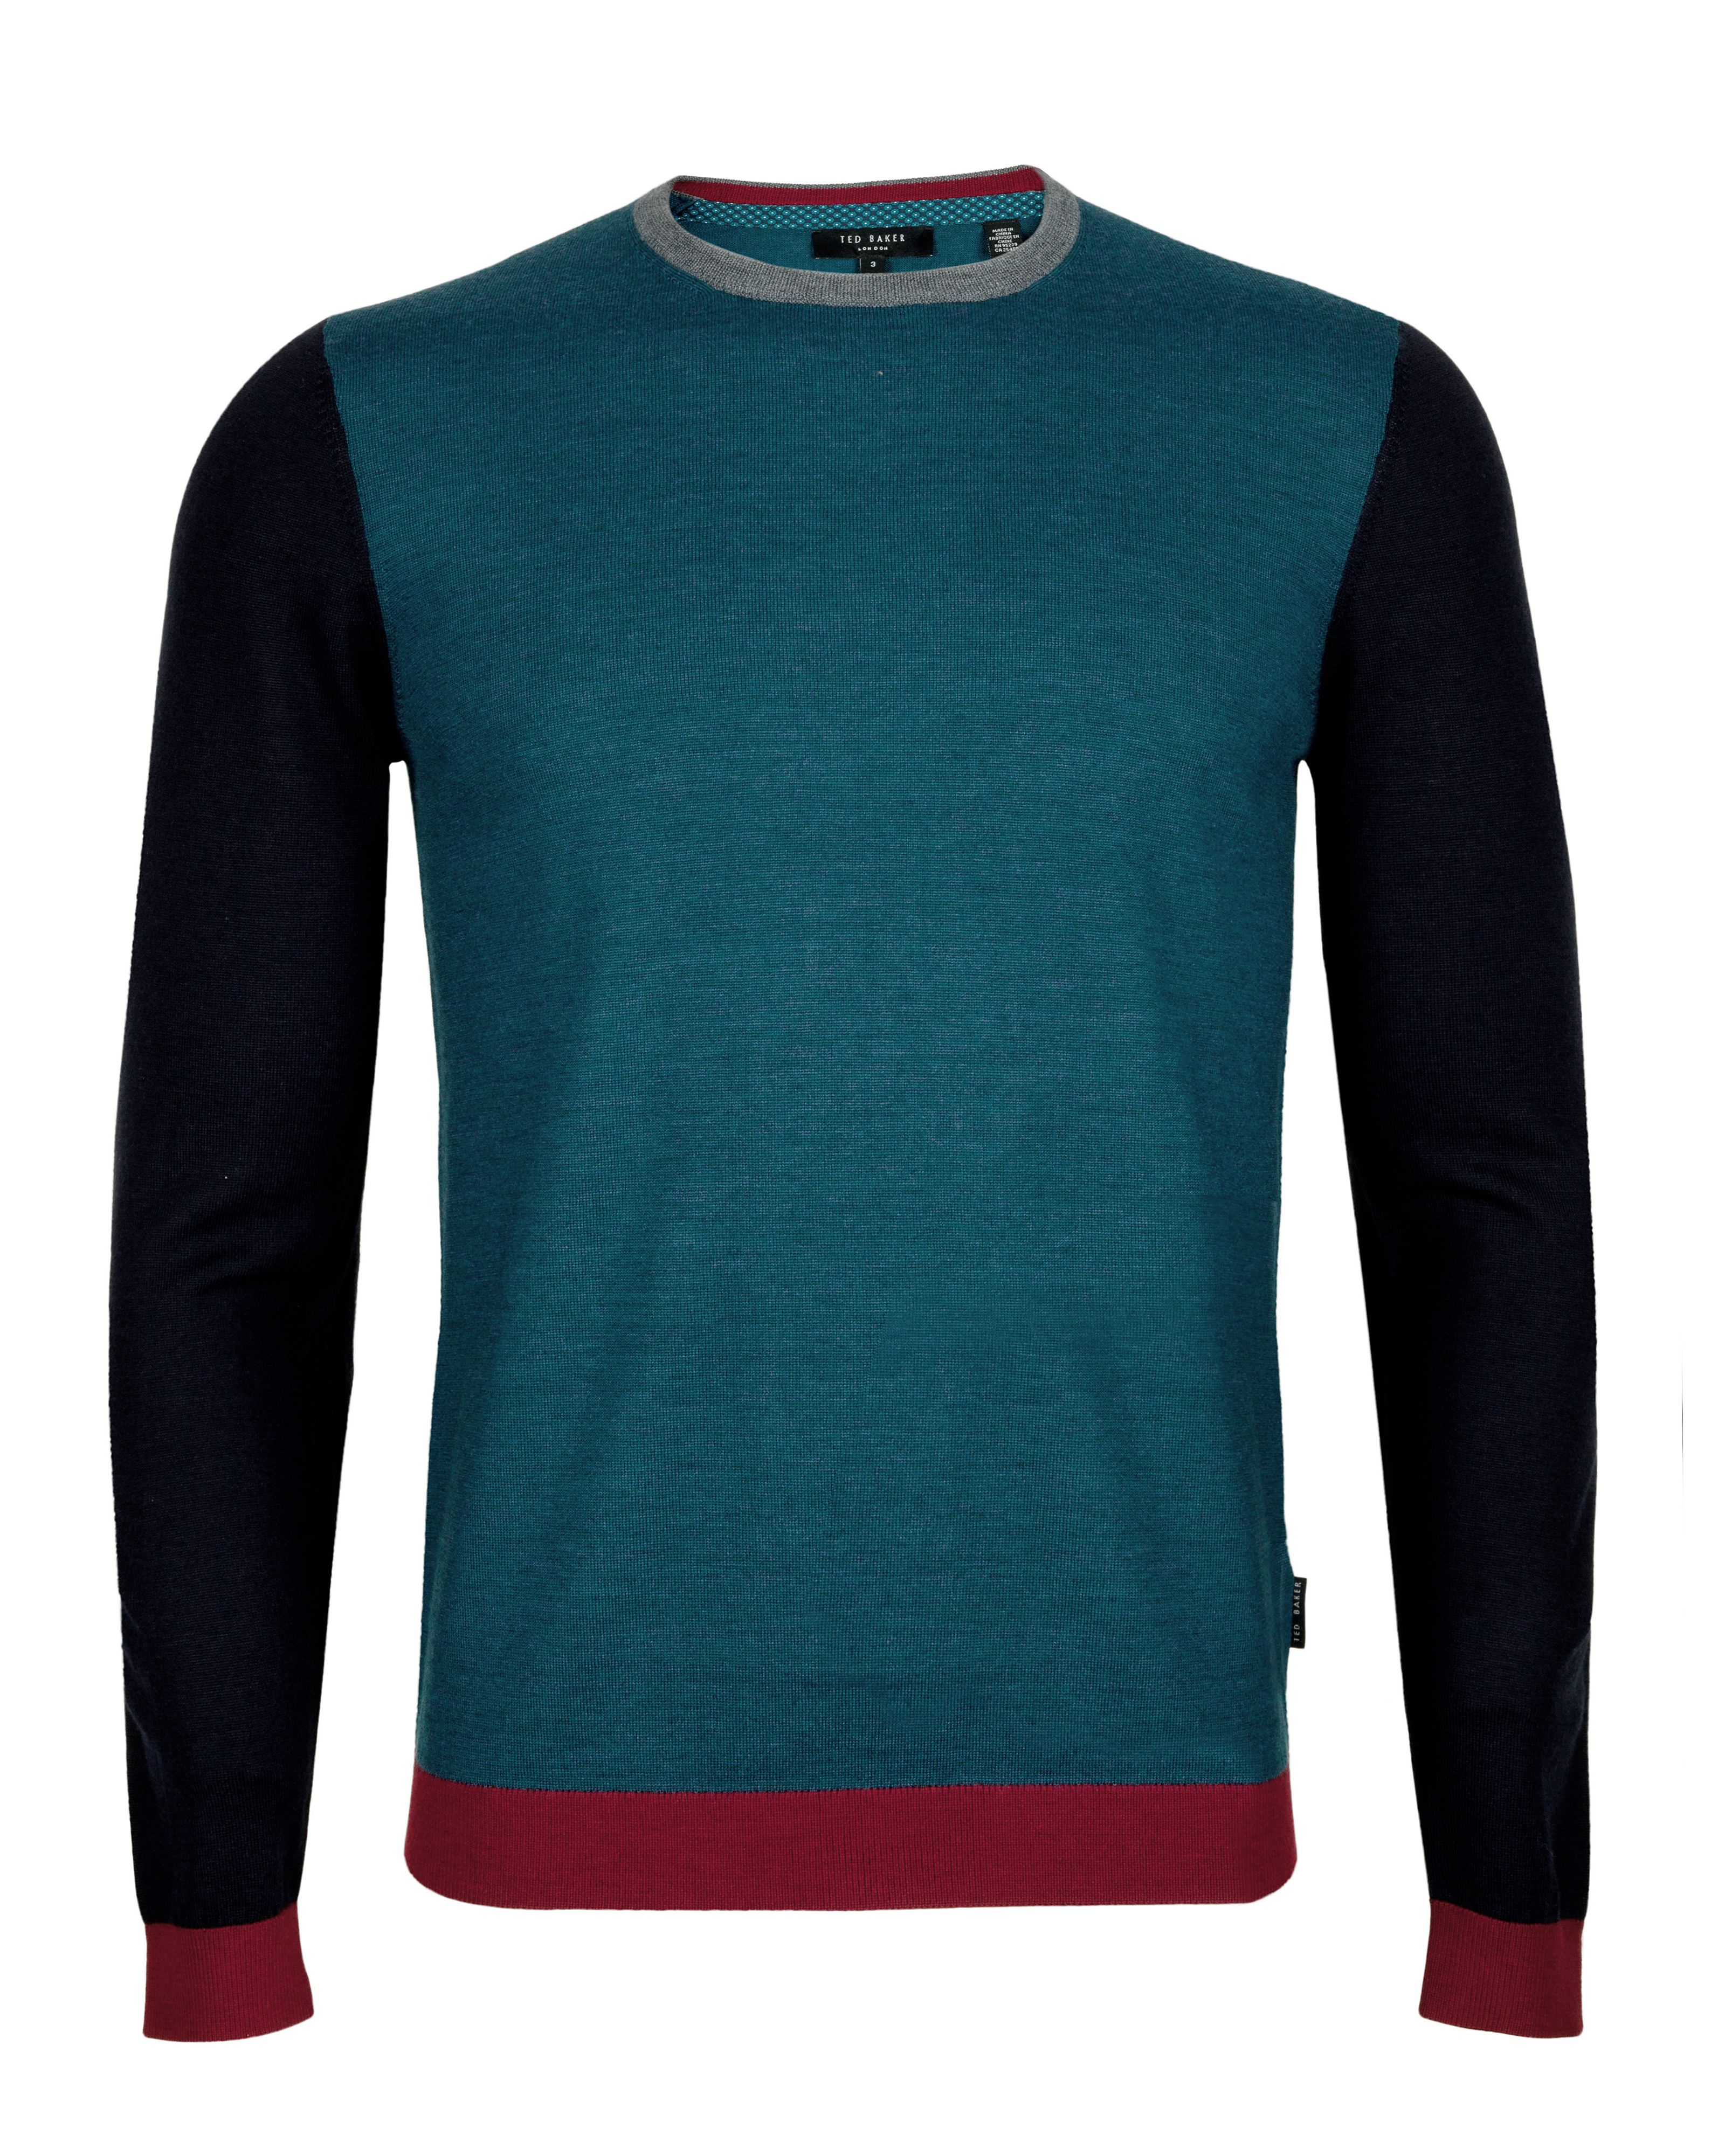 Basenew colour block crew neck jumper